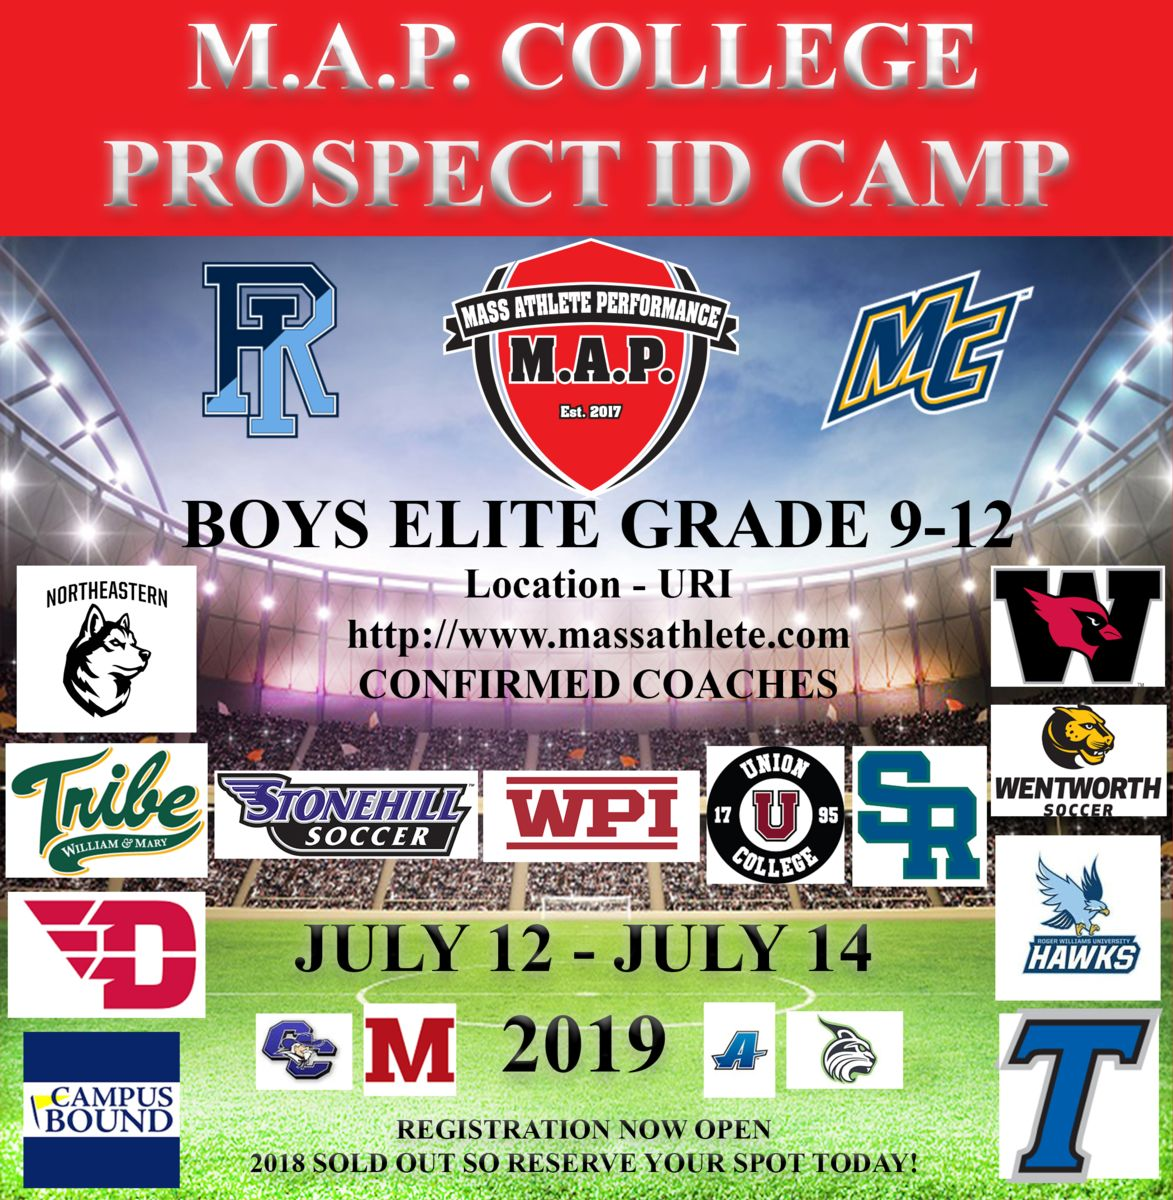 M A P College Prospect Elite Id Camp 2019 Powered By Oasys Sports